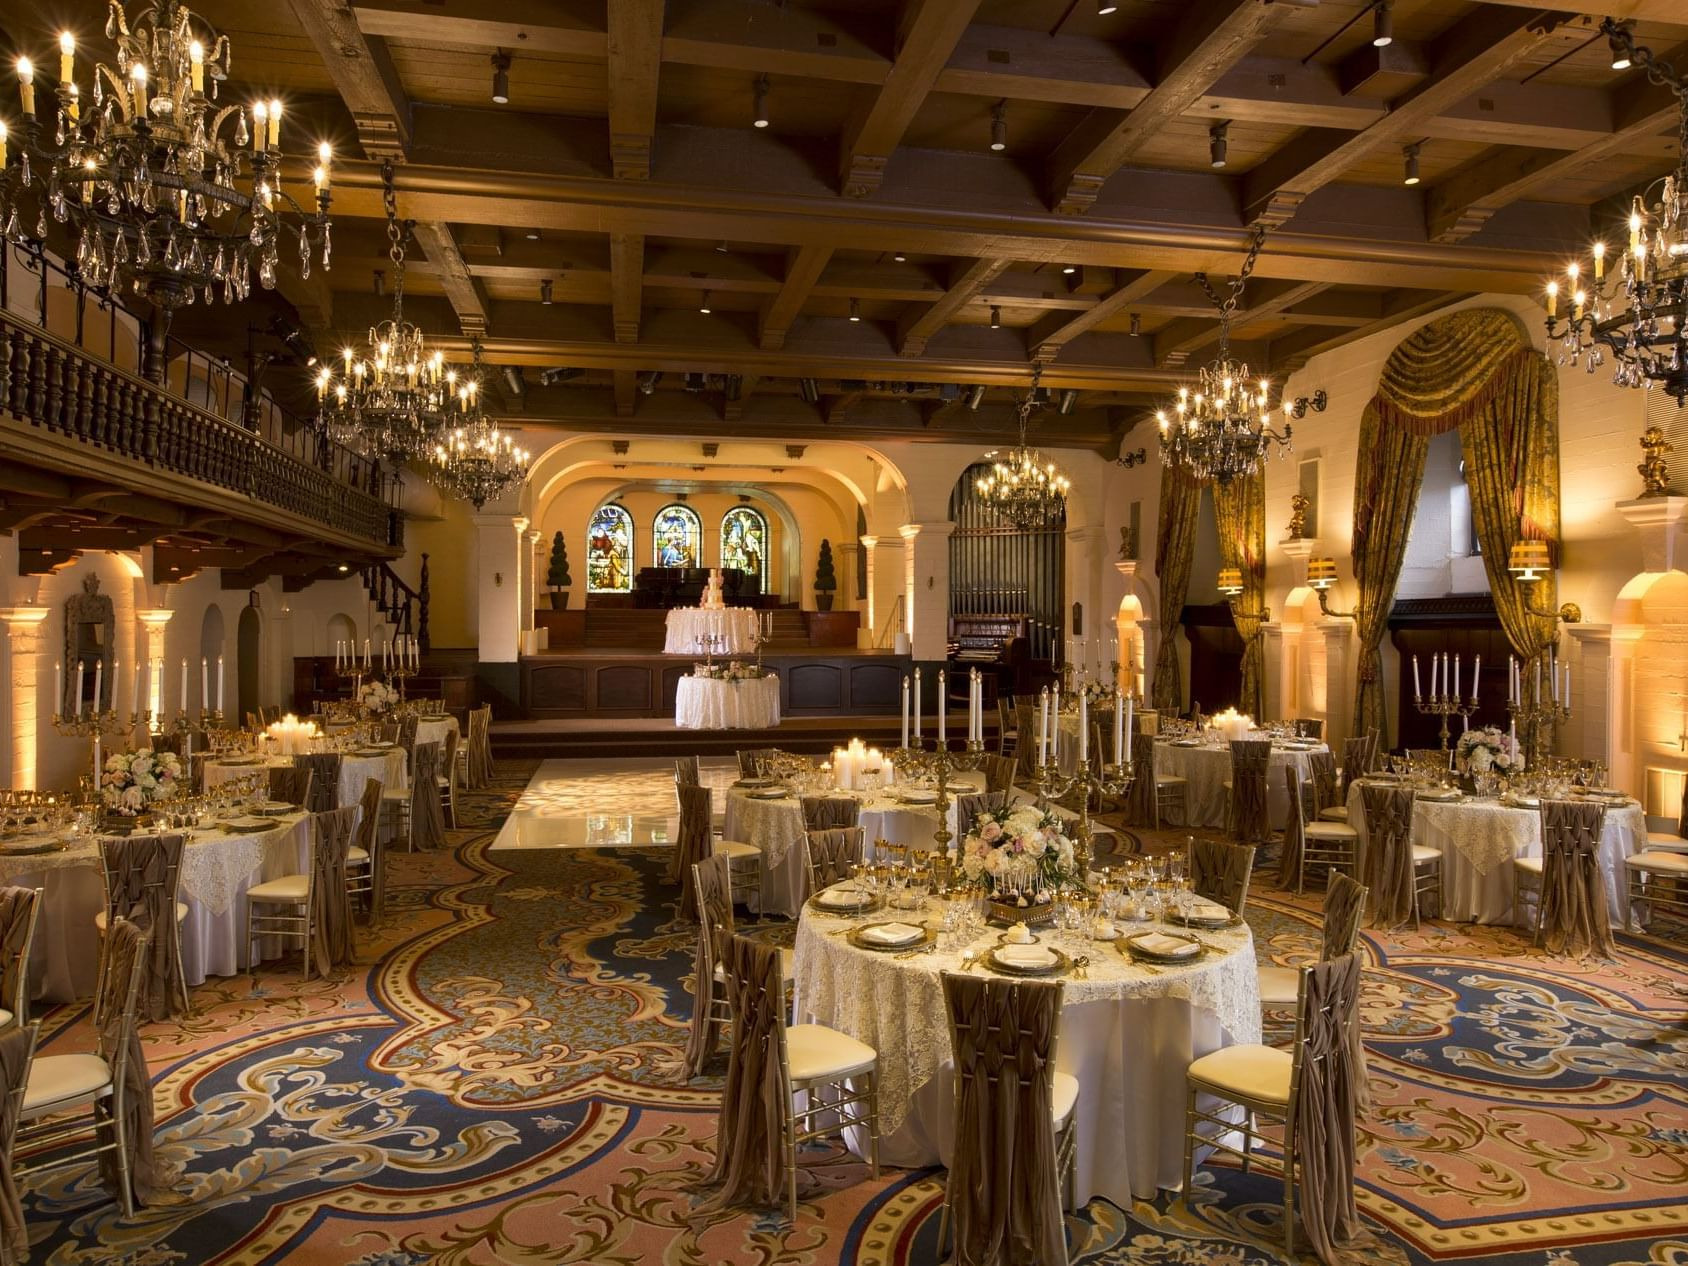 formal ballroom with dining tables and chandeliers